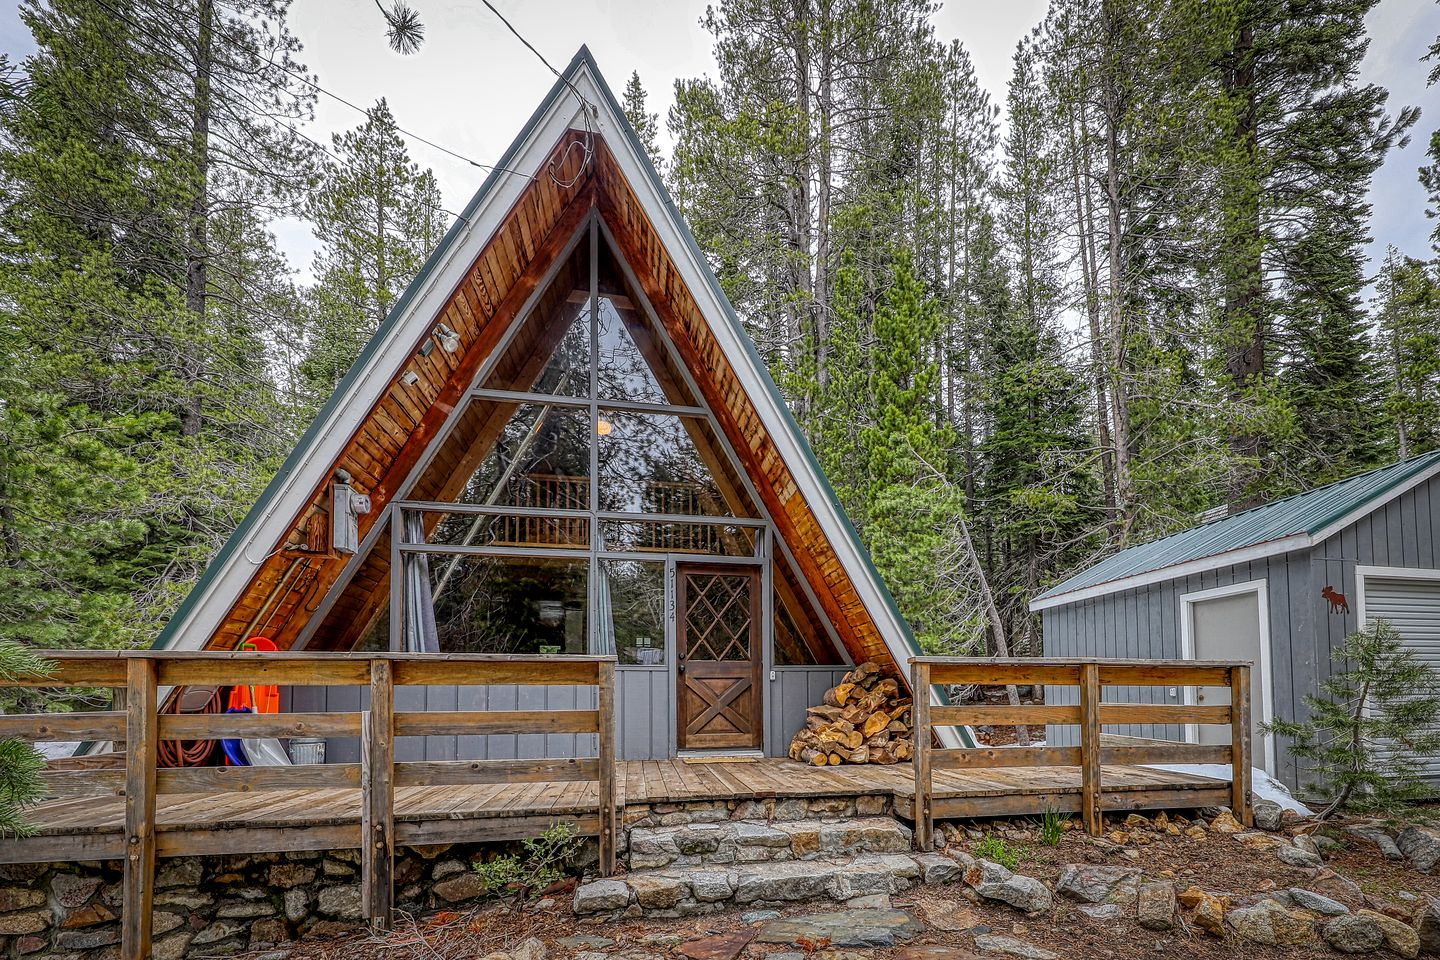 A-Frames (United States, Soda Springs, California)